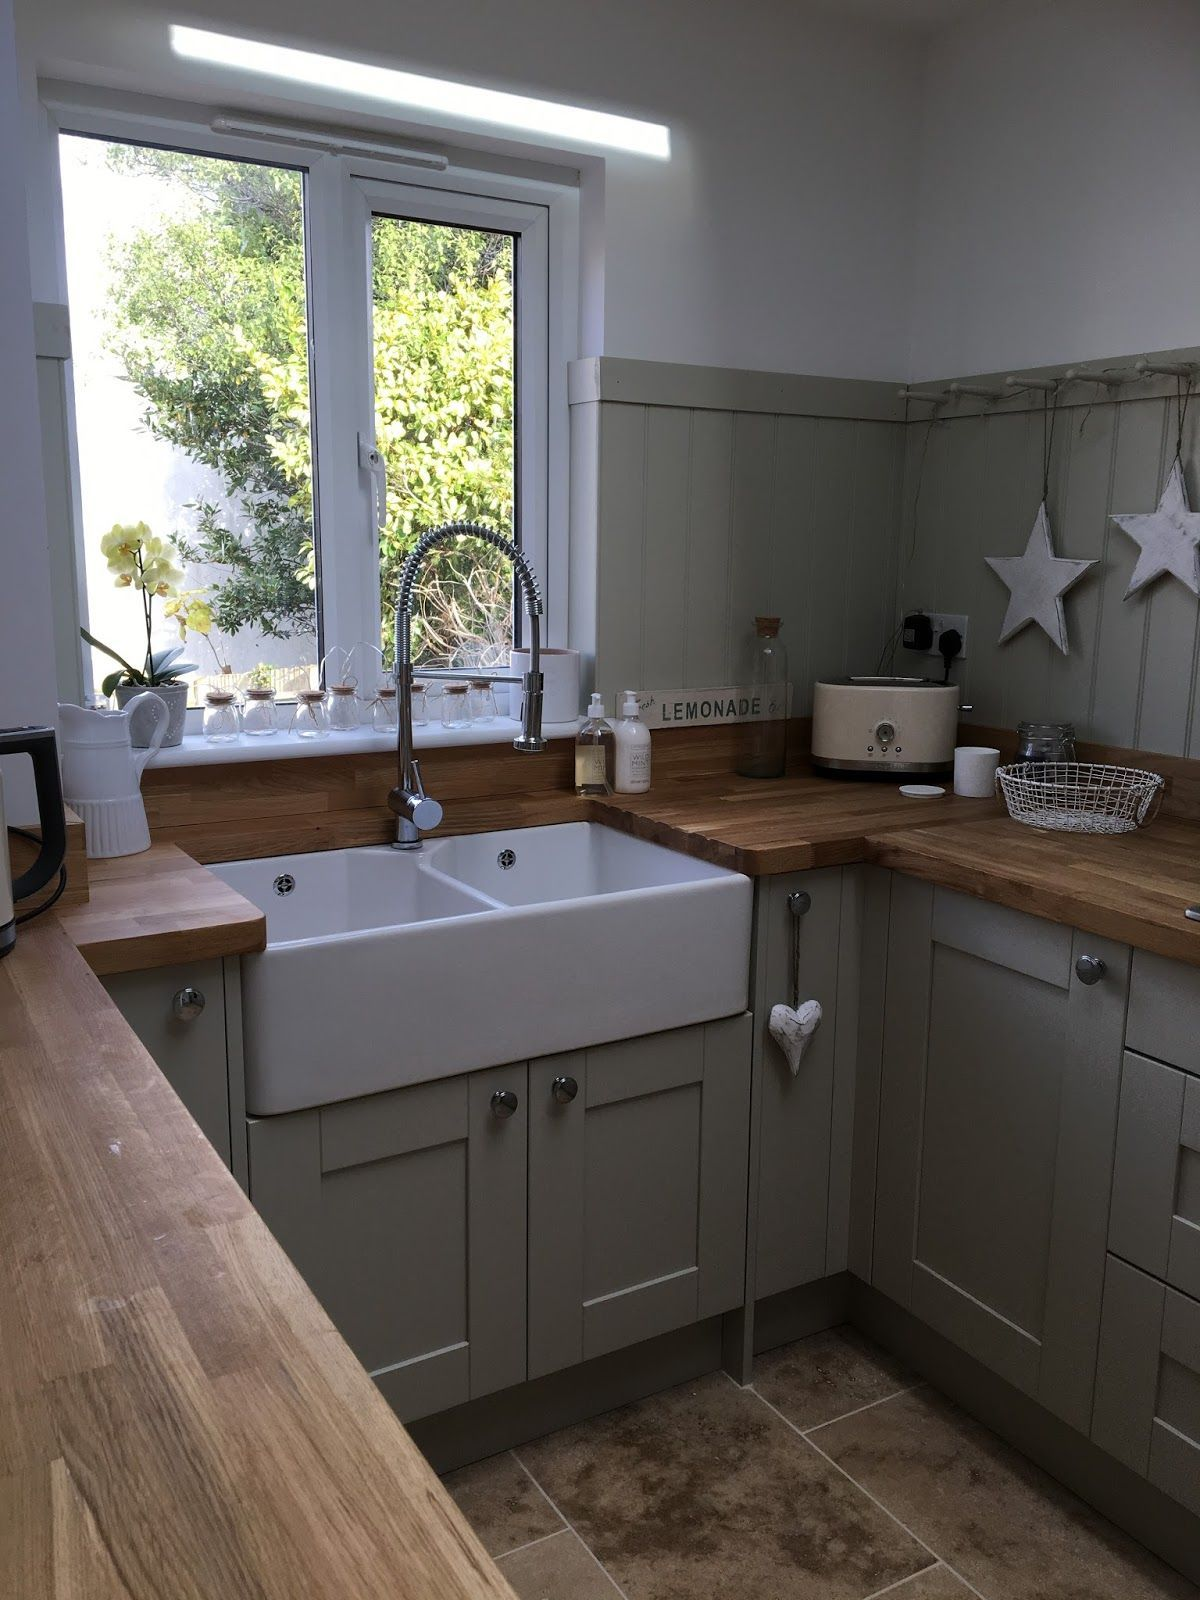 Image result for kitchen tongue and groove splashback